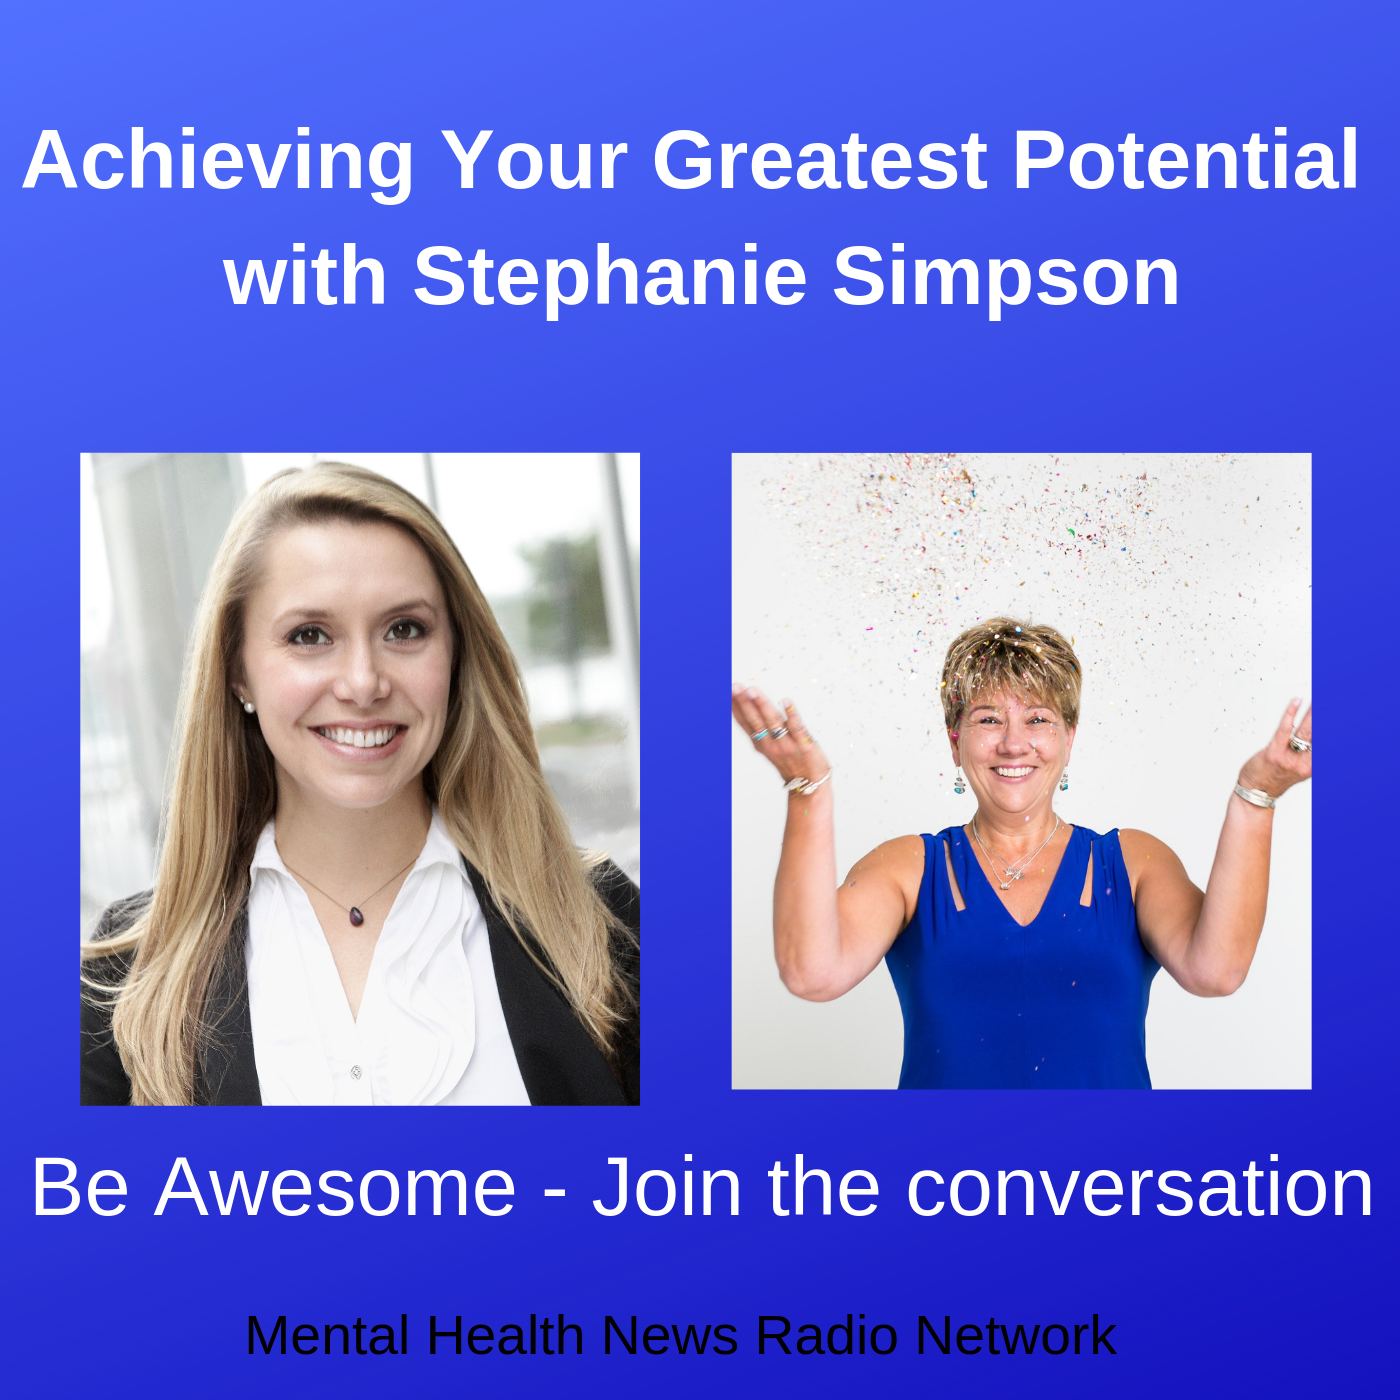 """Achieving Your Greatest Potential"" - I spoke with Dr. Kristina Hallett on her podcast ""Be Awesome"" about re-defining your relationship with Stress and achieving peak performance. https://www.spreaker.com/user/mhnrnetwork/achieving-your-greatest-potential"